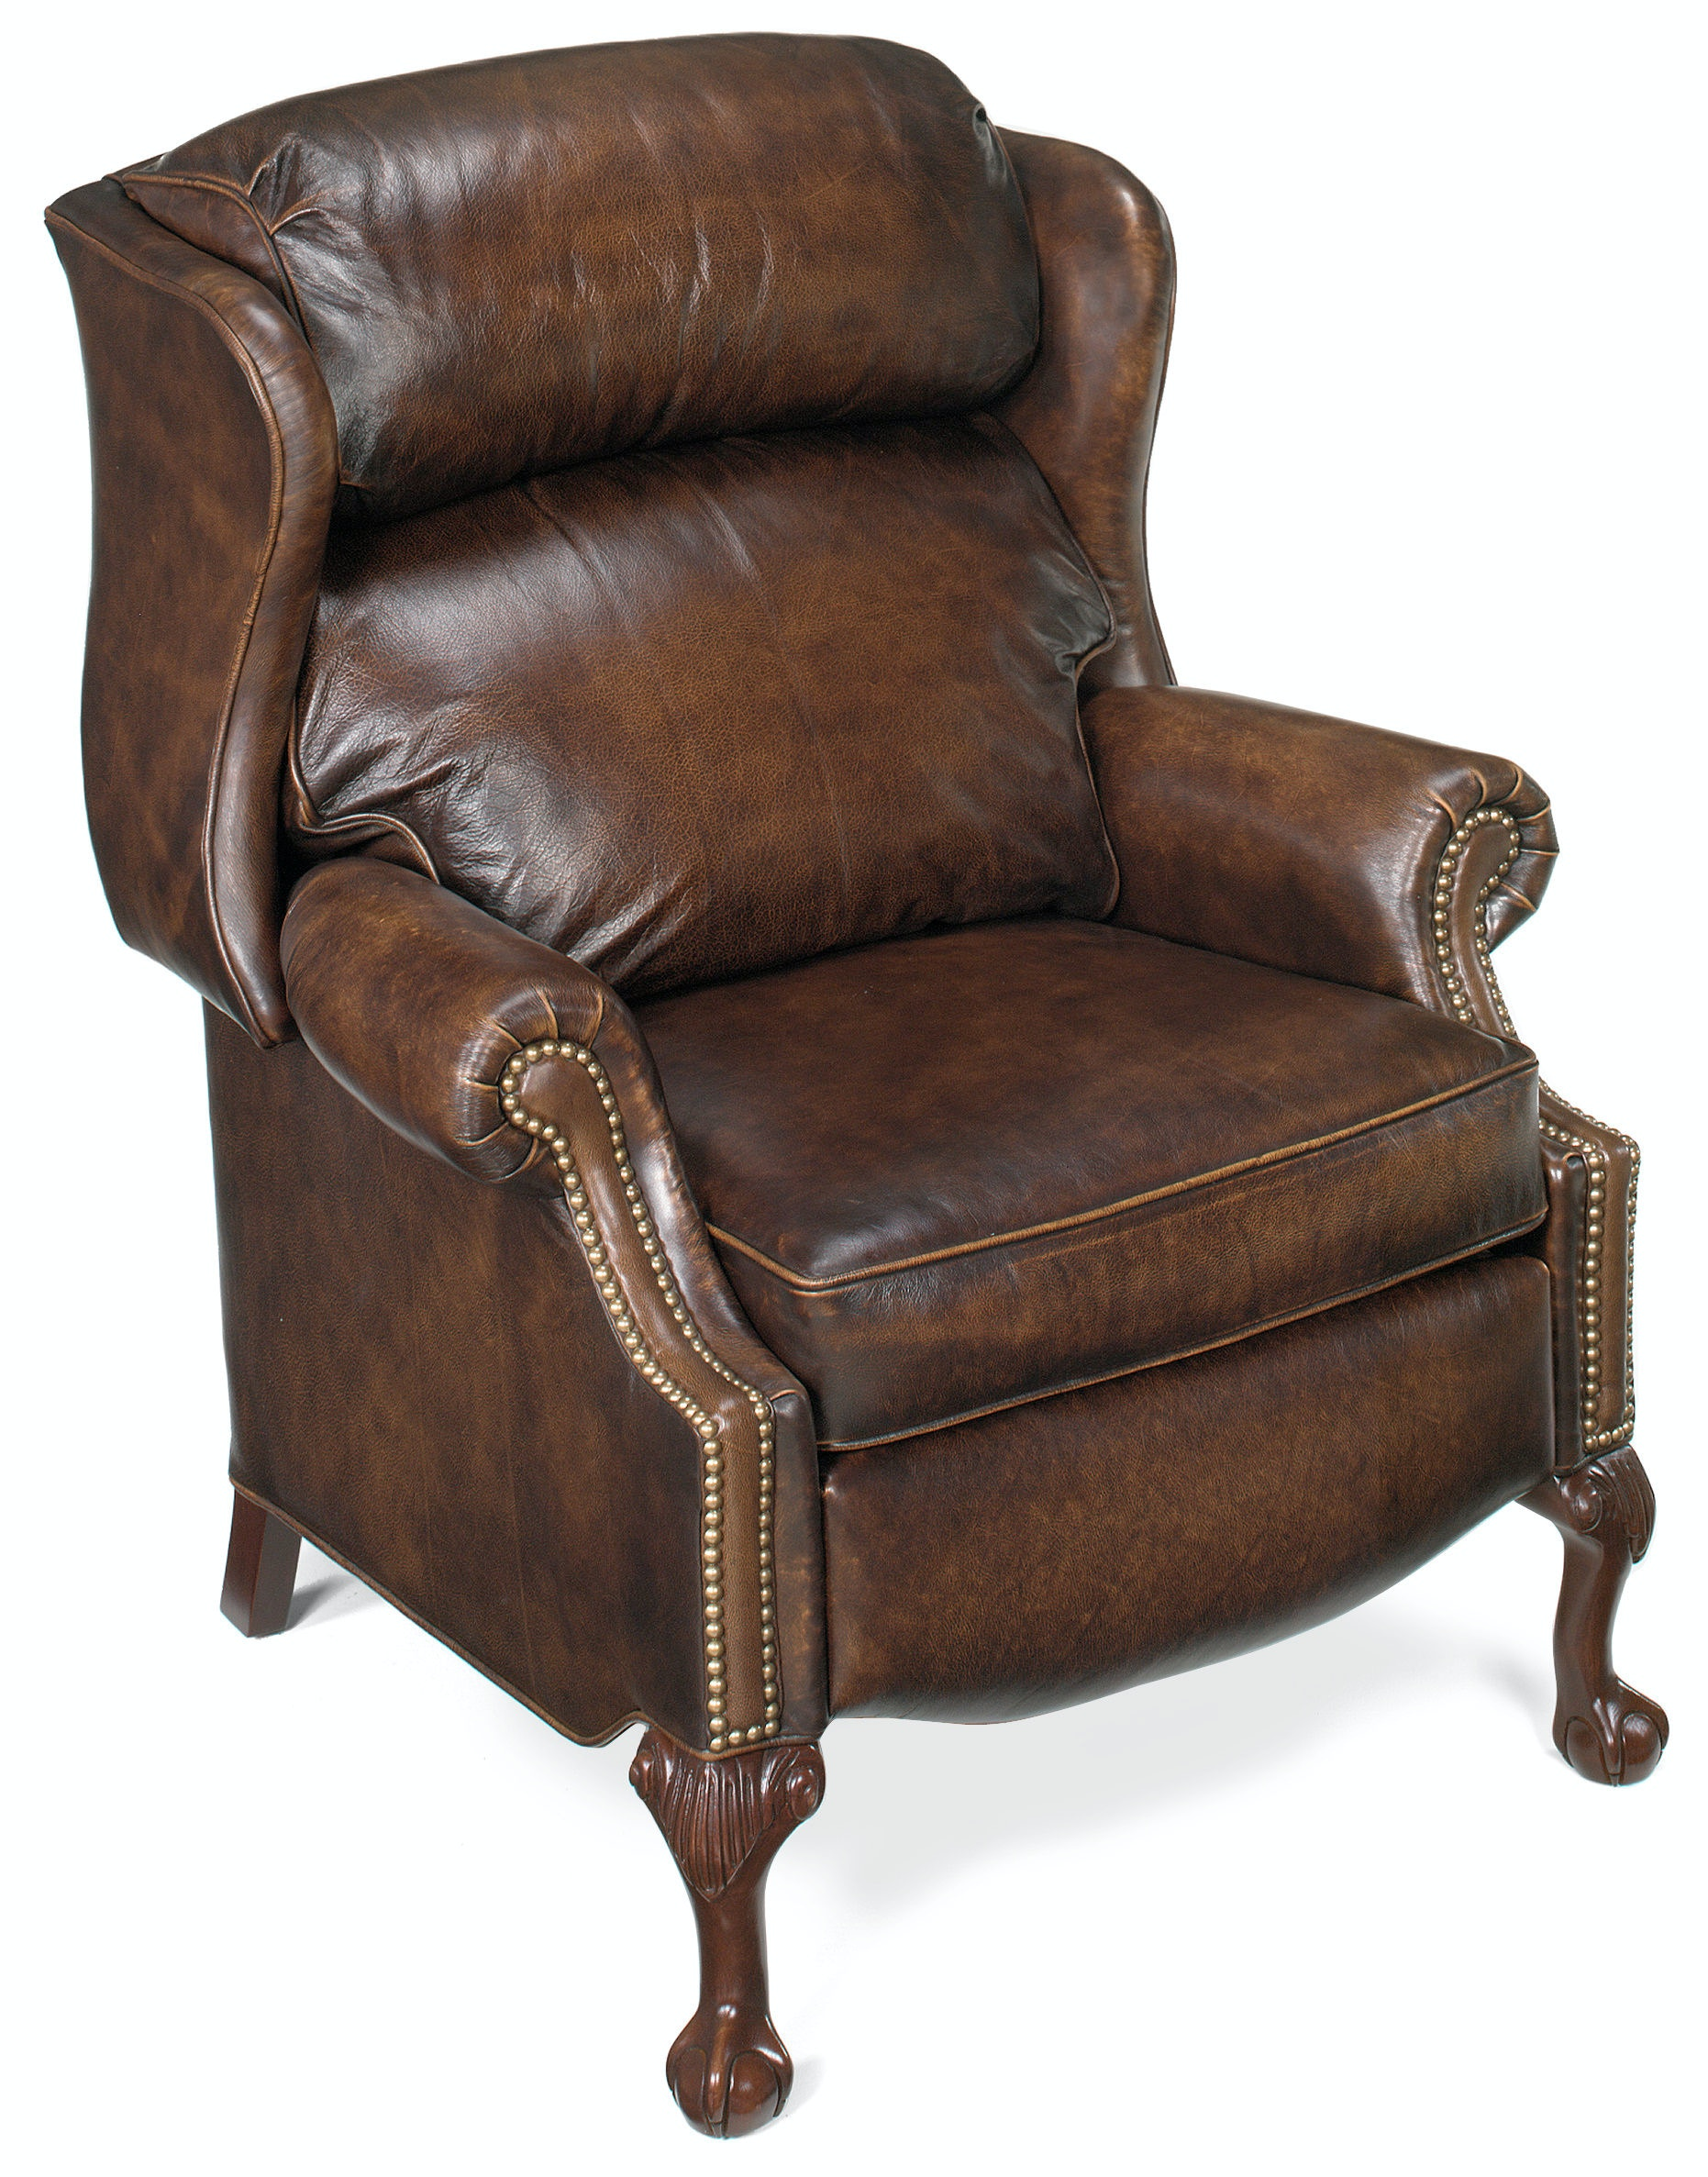 wing chair recliner canada office under 3000 bradington young living room maxwell ball and claw reclining 4115